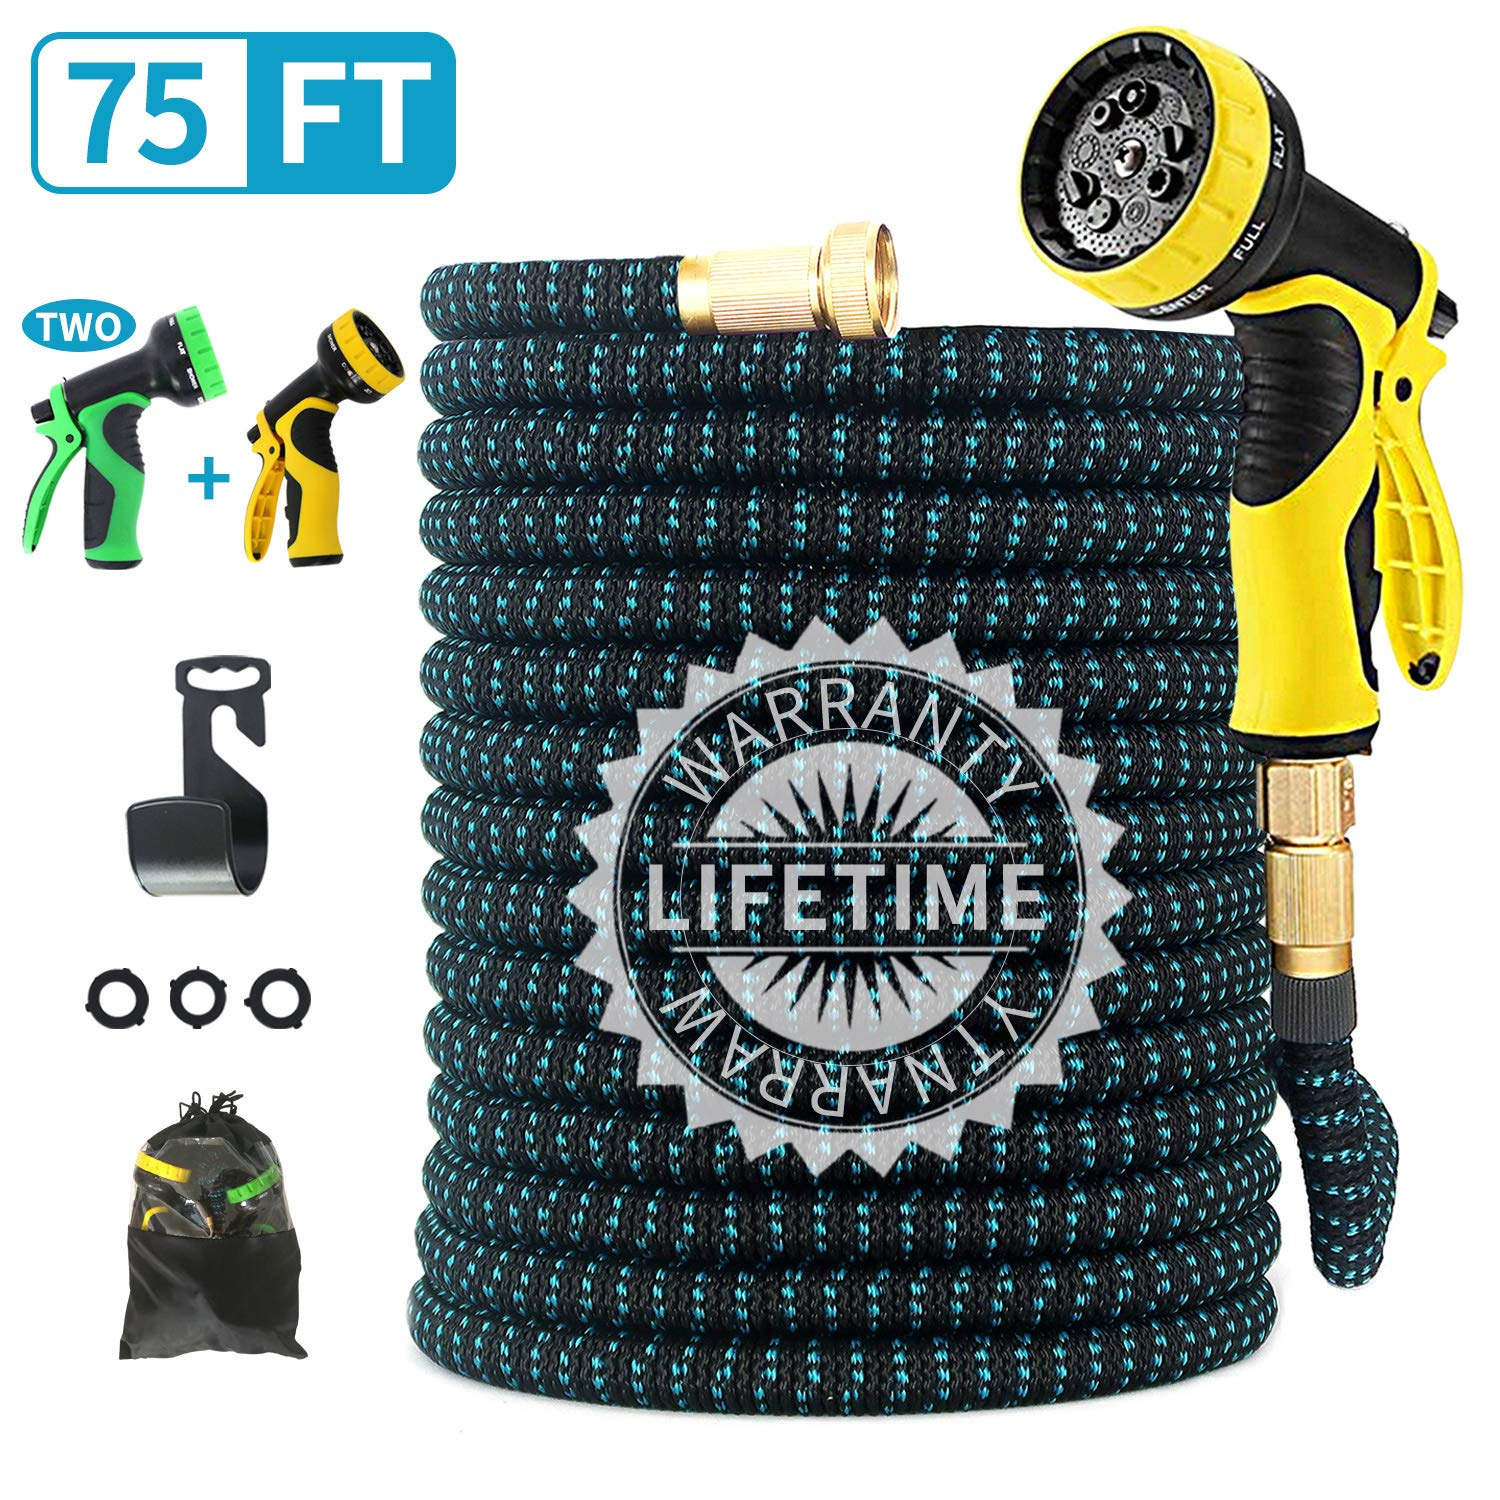 "FIENVO 75 ft Upgraded Expandable Durable No-Kink Flexible Garden Water Hose Set with Extra Strength Fabric Triple Layer Latex Core,3/4"" Solid Brass Connectors 9 Function Spray Hose Nozzle"